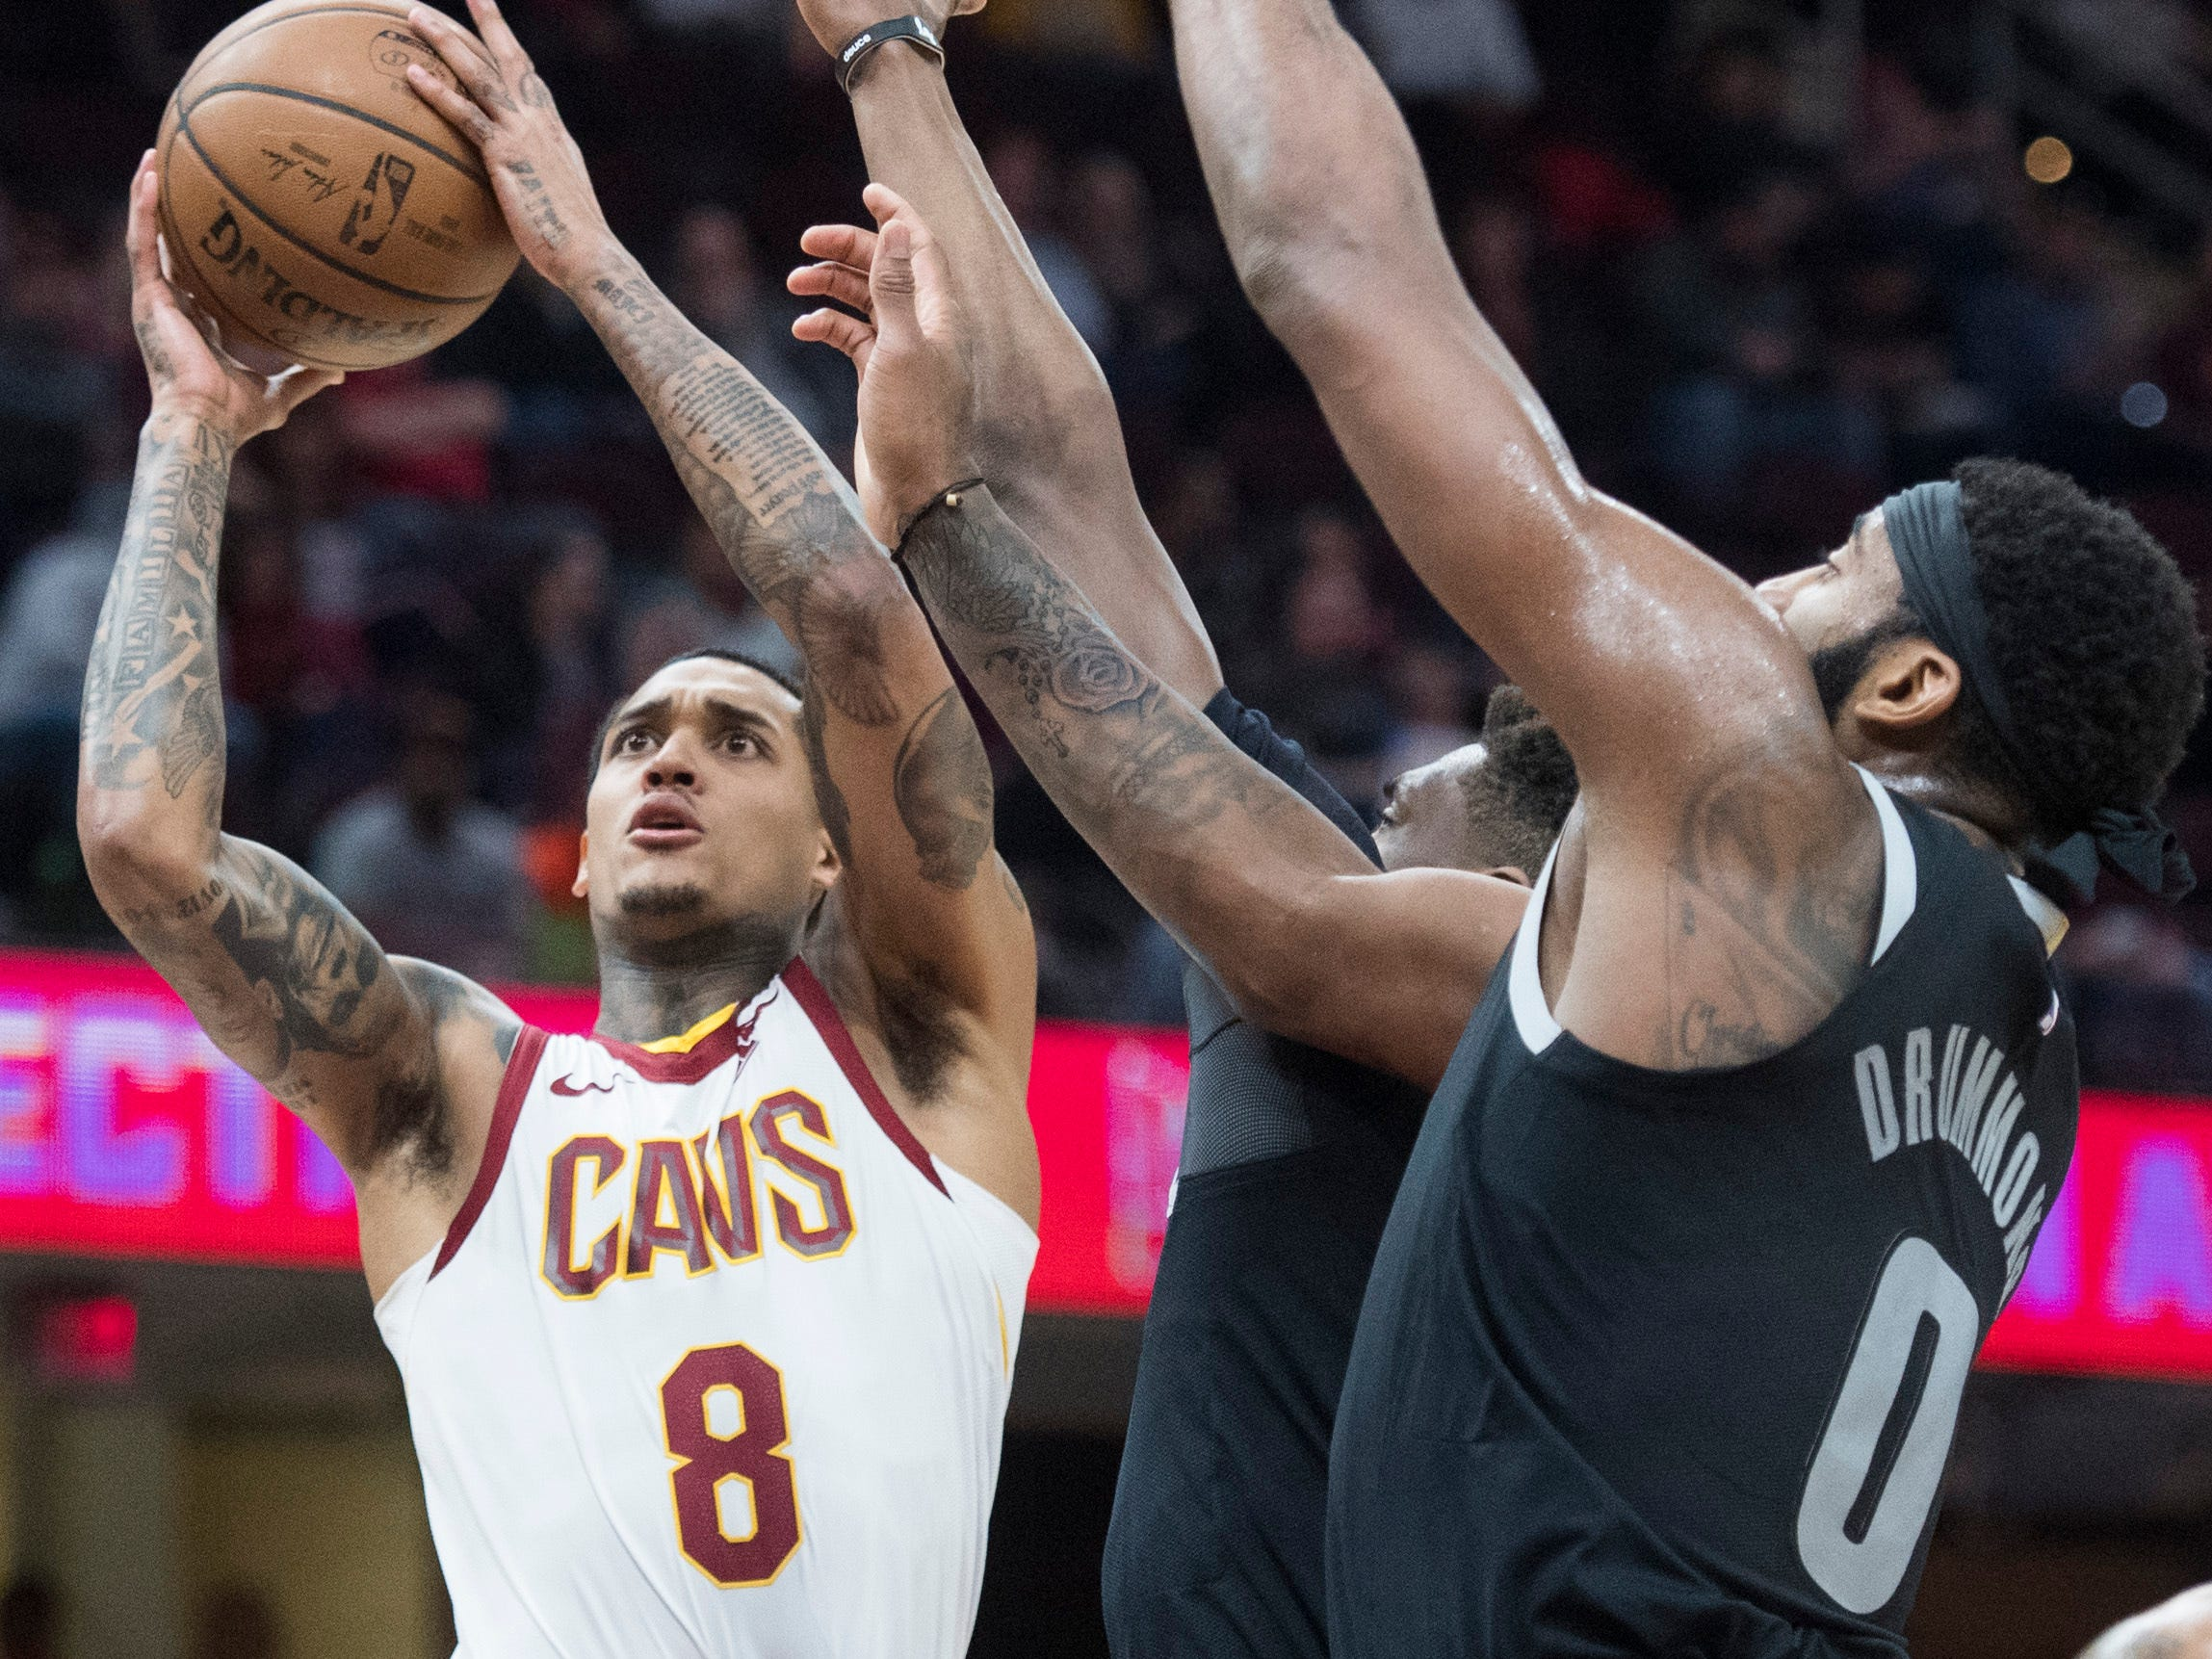 Cleveland Cavaliers' guard Jordan Clarkson, left, drives to the basket against Detroit Pistons' guard Langston Galloway and center Andre Drummond in the first half of an NBA basketball game.